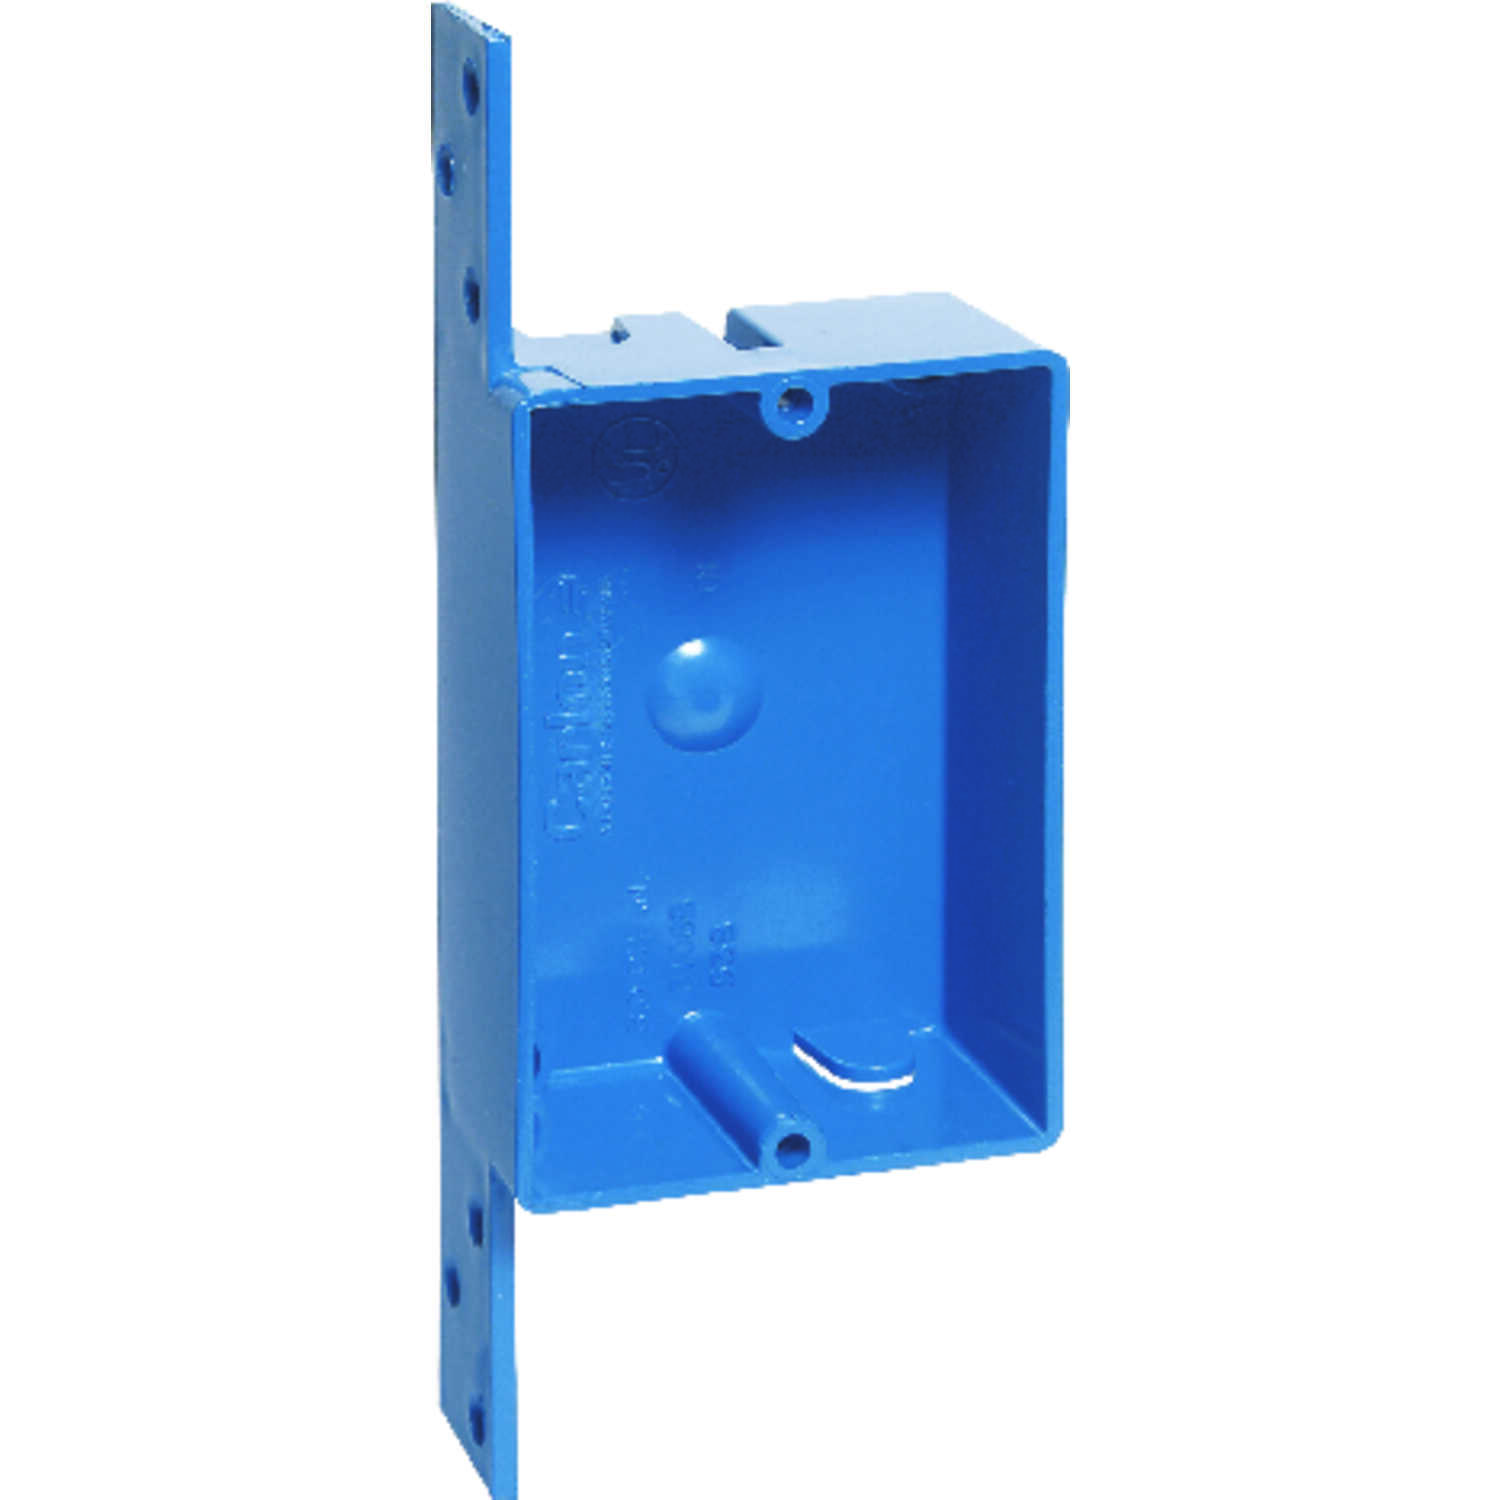 Carlon  Rectangle  1 Gang  PVC  Outlet Box  Blue  3-5/8 in.